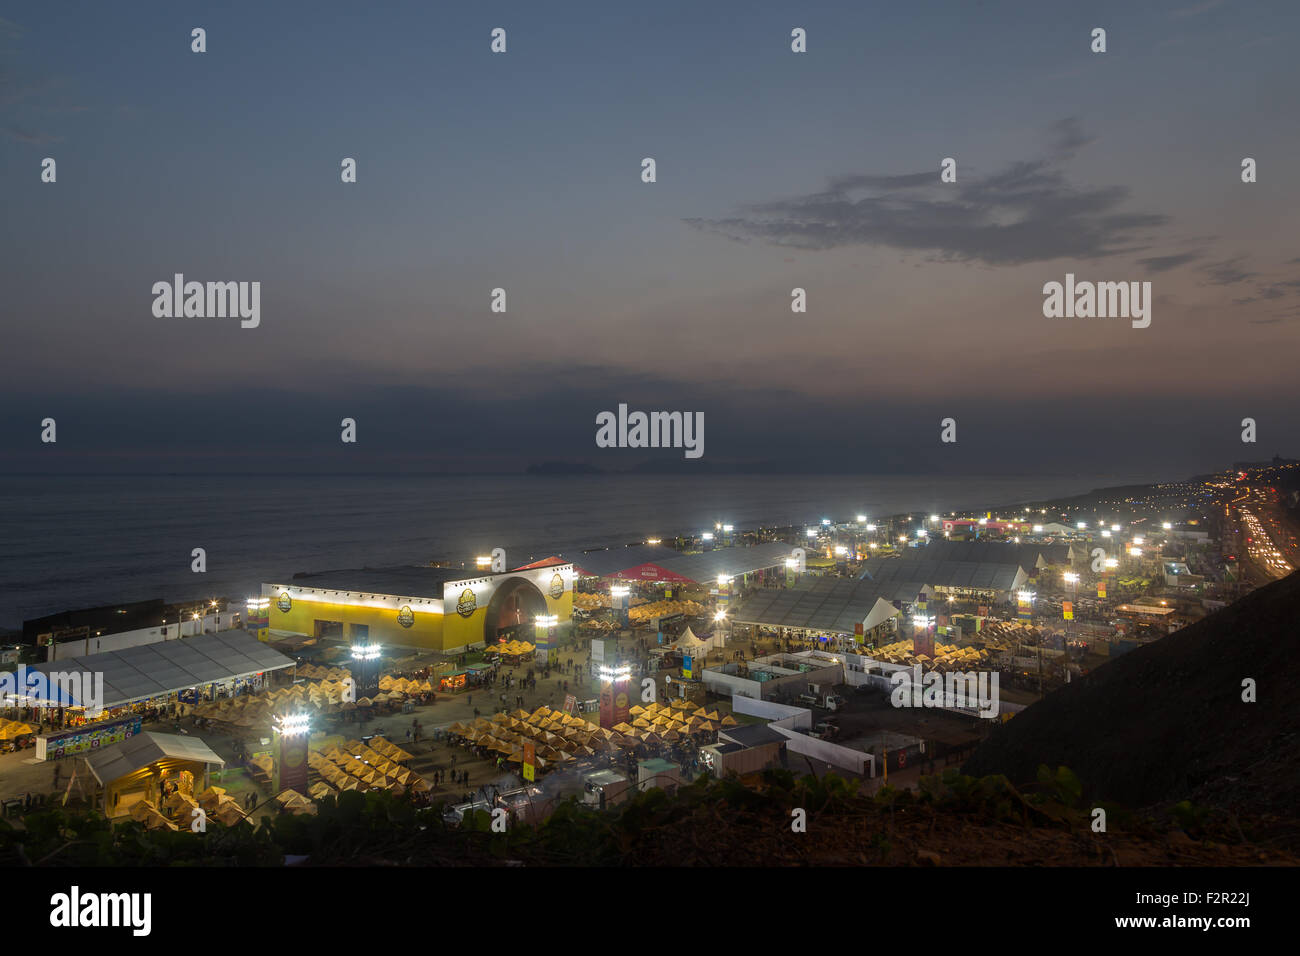 Lima, Peru - September 11, 2015: View of the annual food festival Mistura by night taken from above. - Stock Image